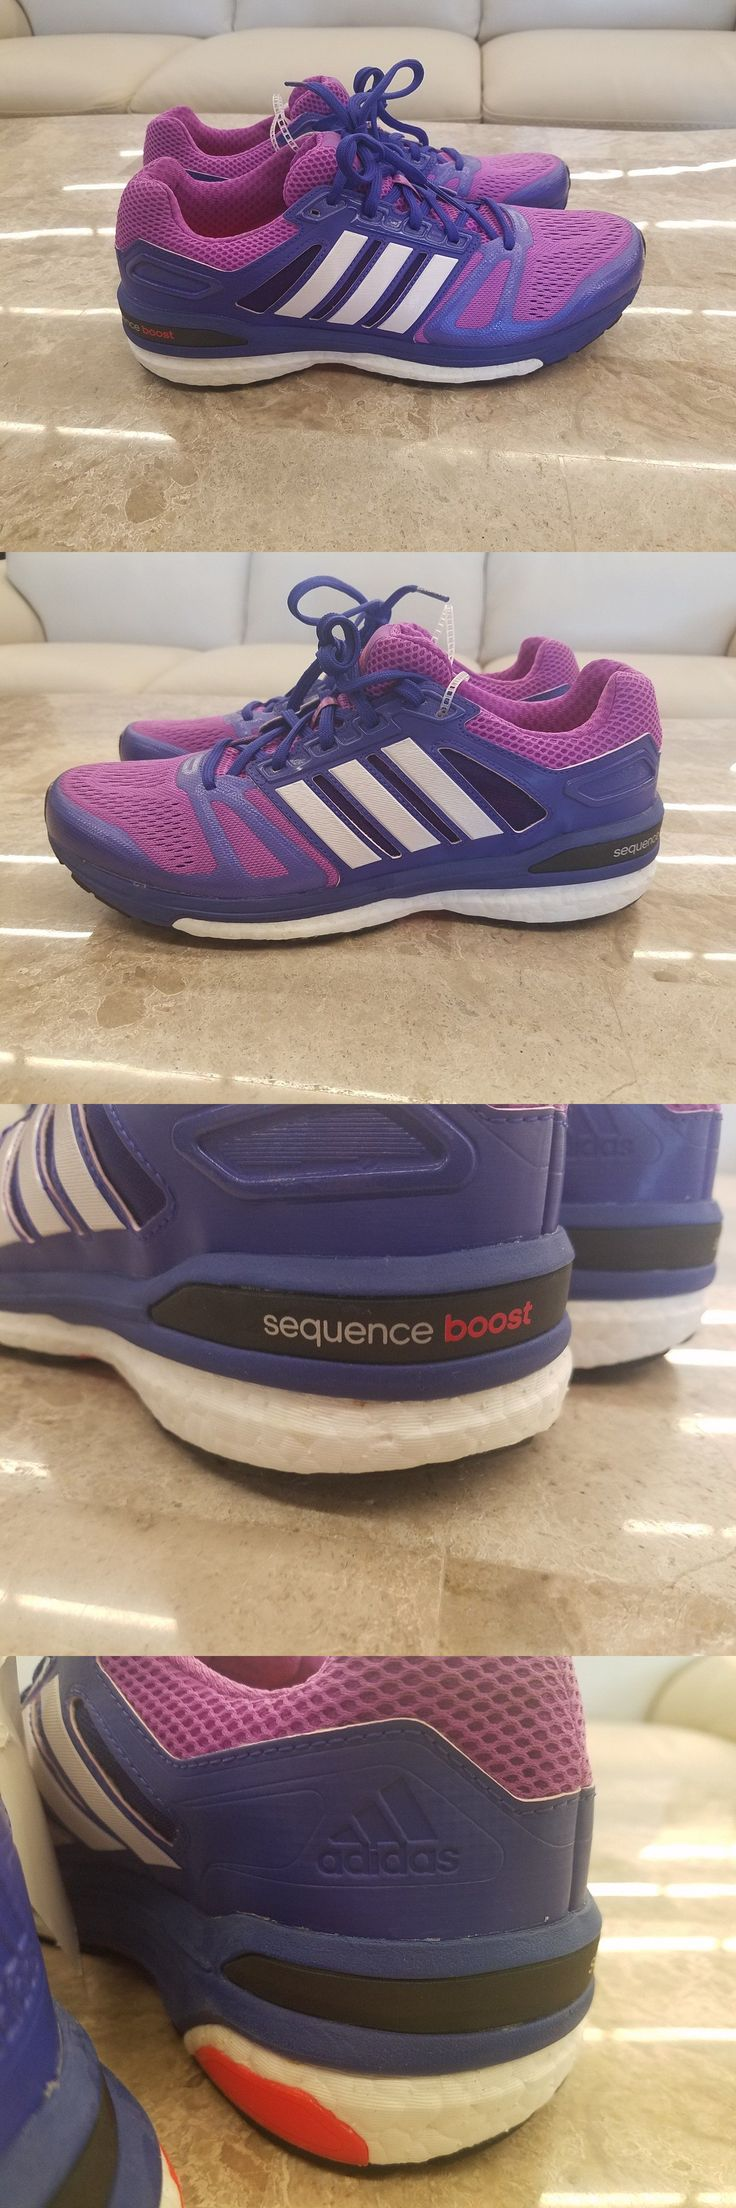 Athletic 95672: New Adidas Supernova Sequence 7 Boost Women S Running Shoes Purple Sizes -> BUY IT NOW ONLY: $49.99 on eBay!